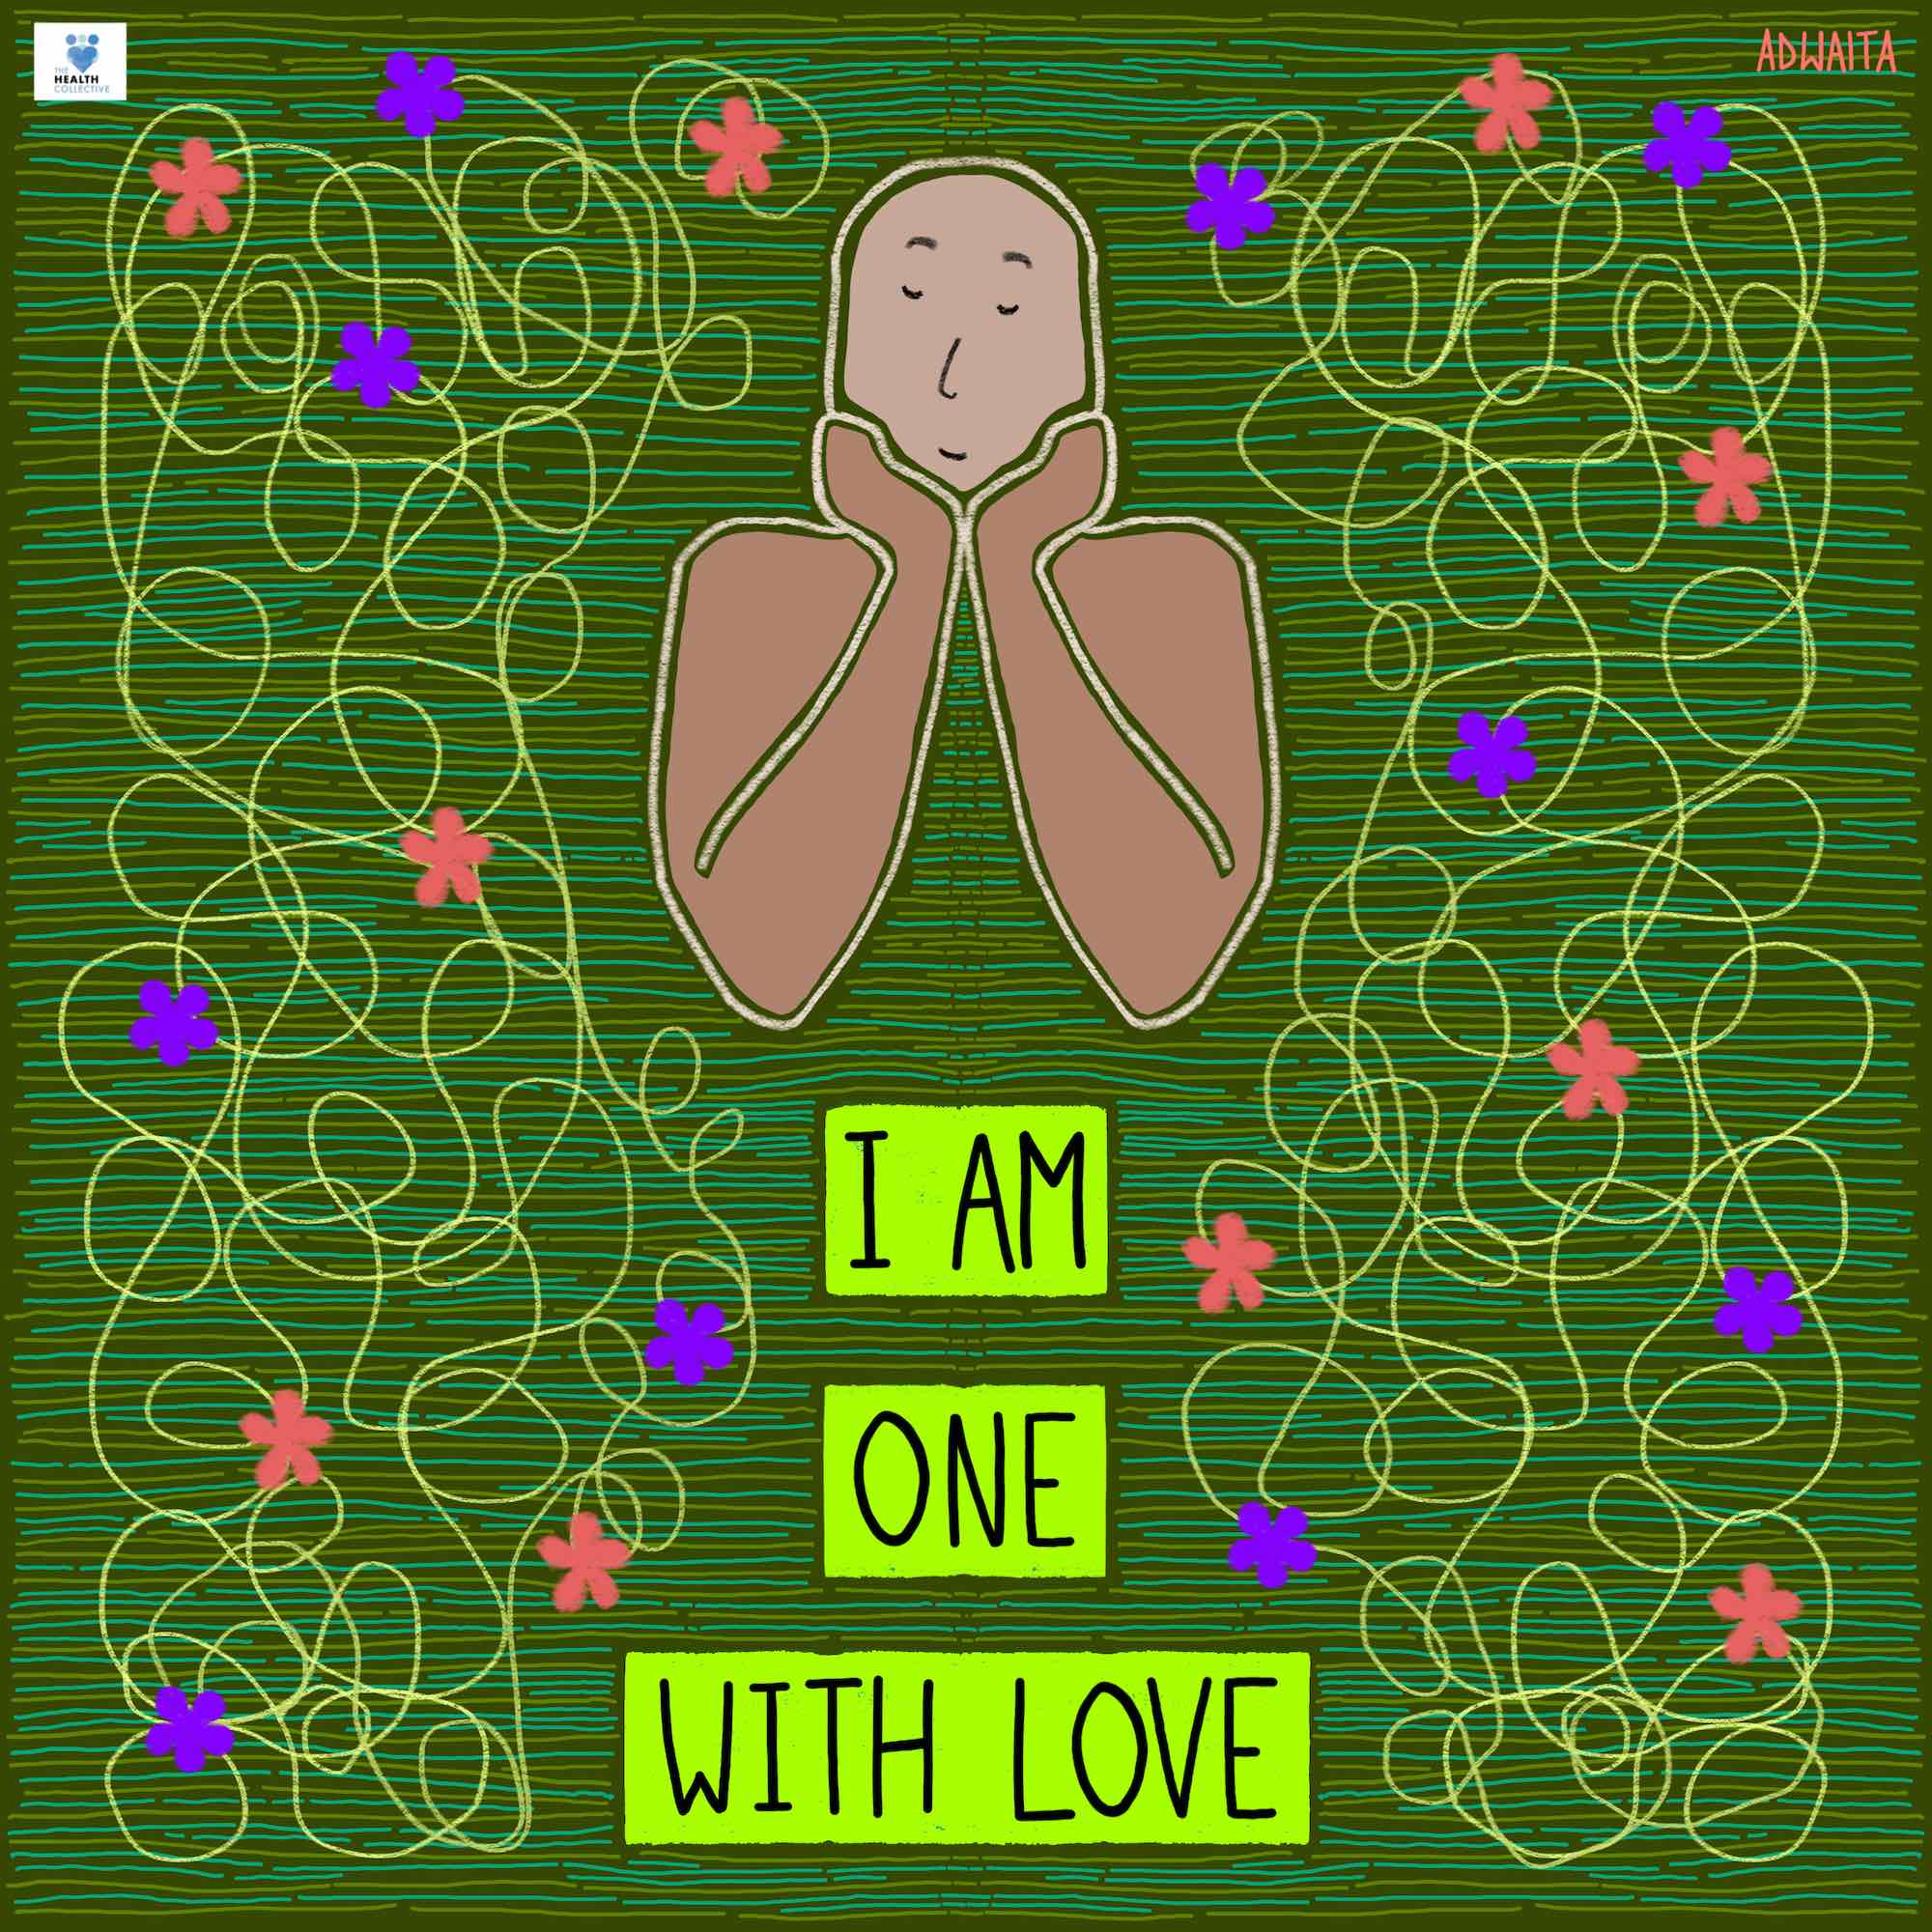 Affirmations are a positive mental health series